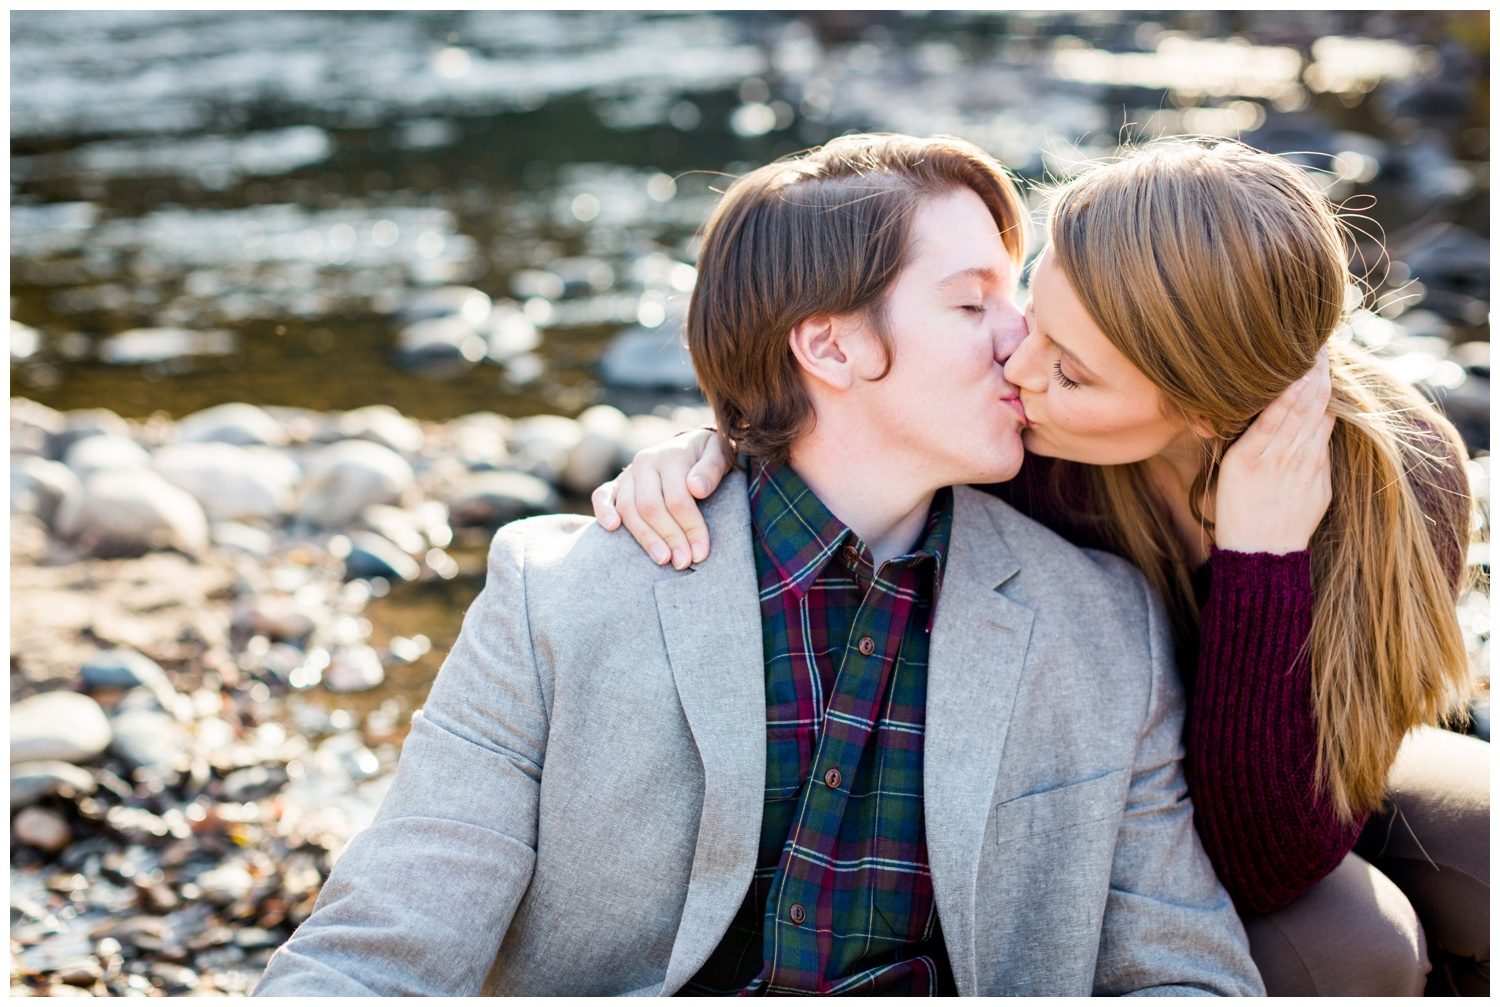 fort collins engagement photography04.jpg